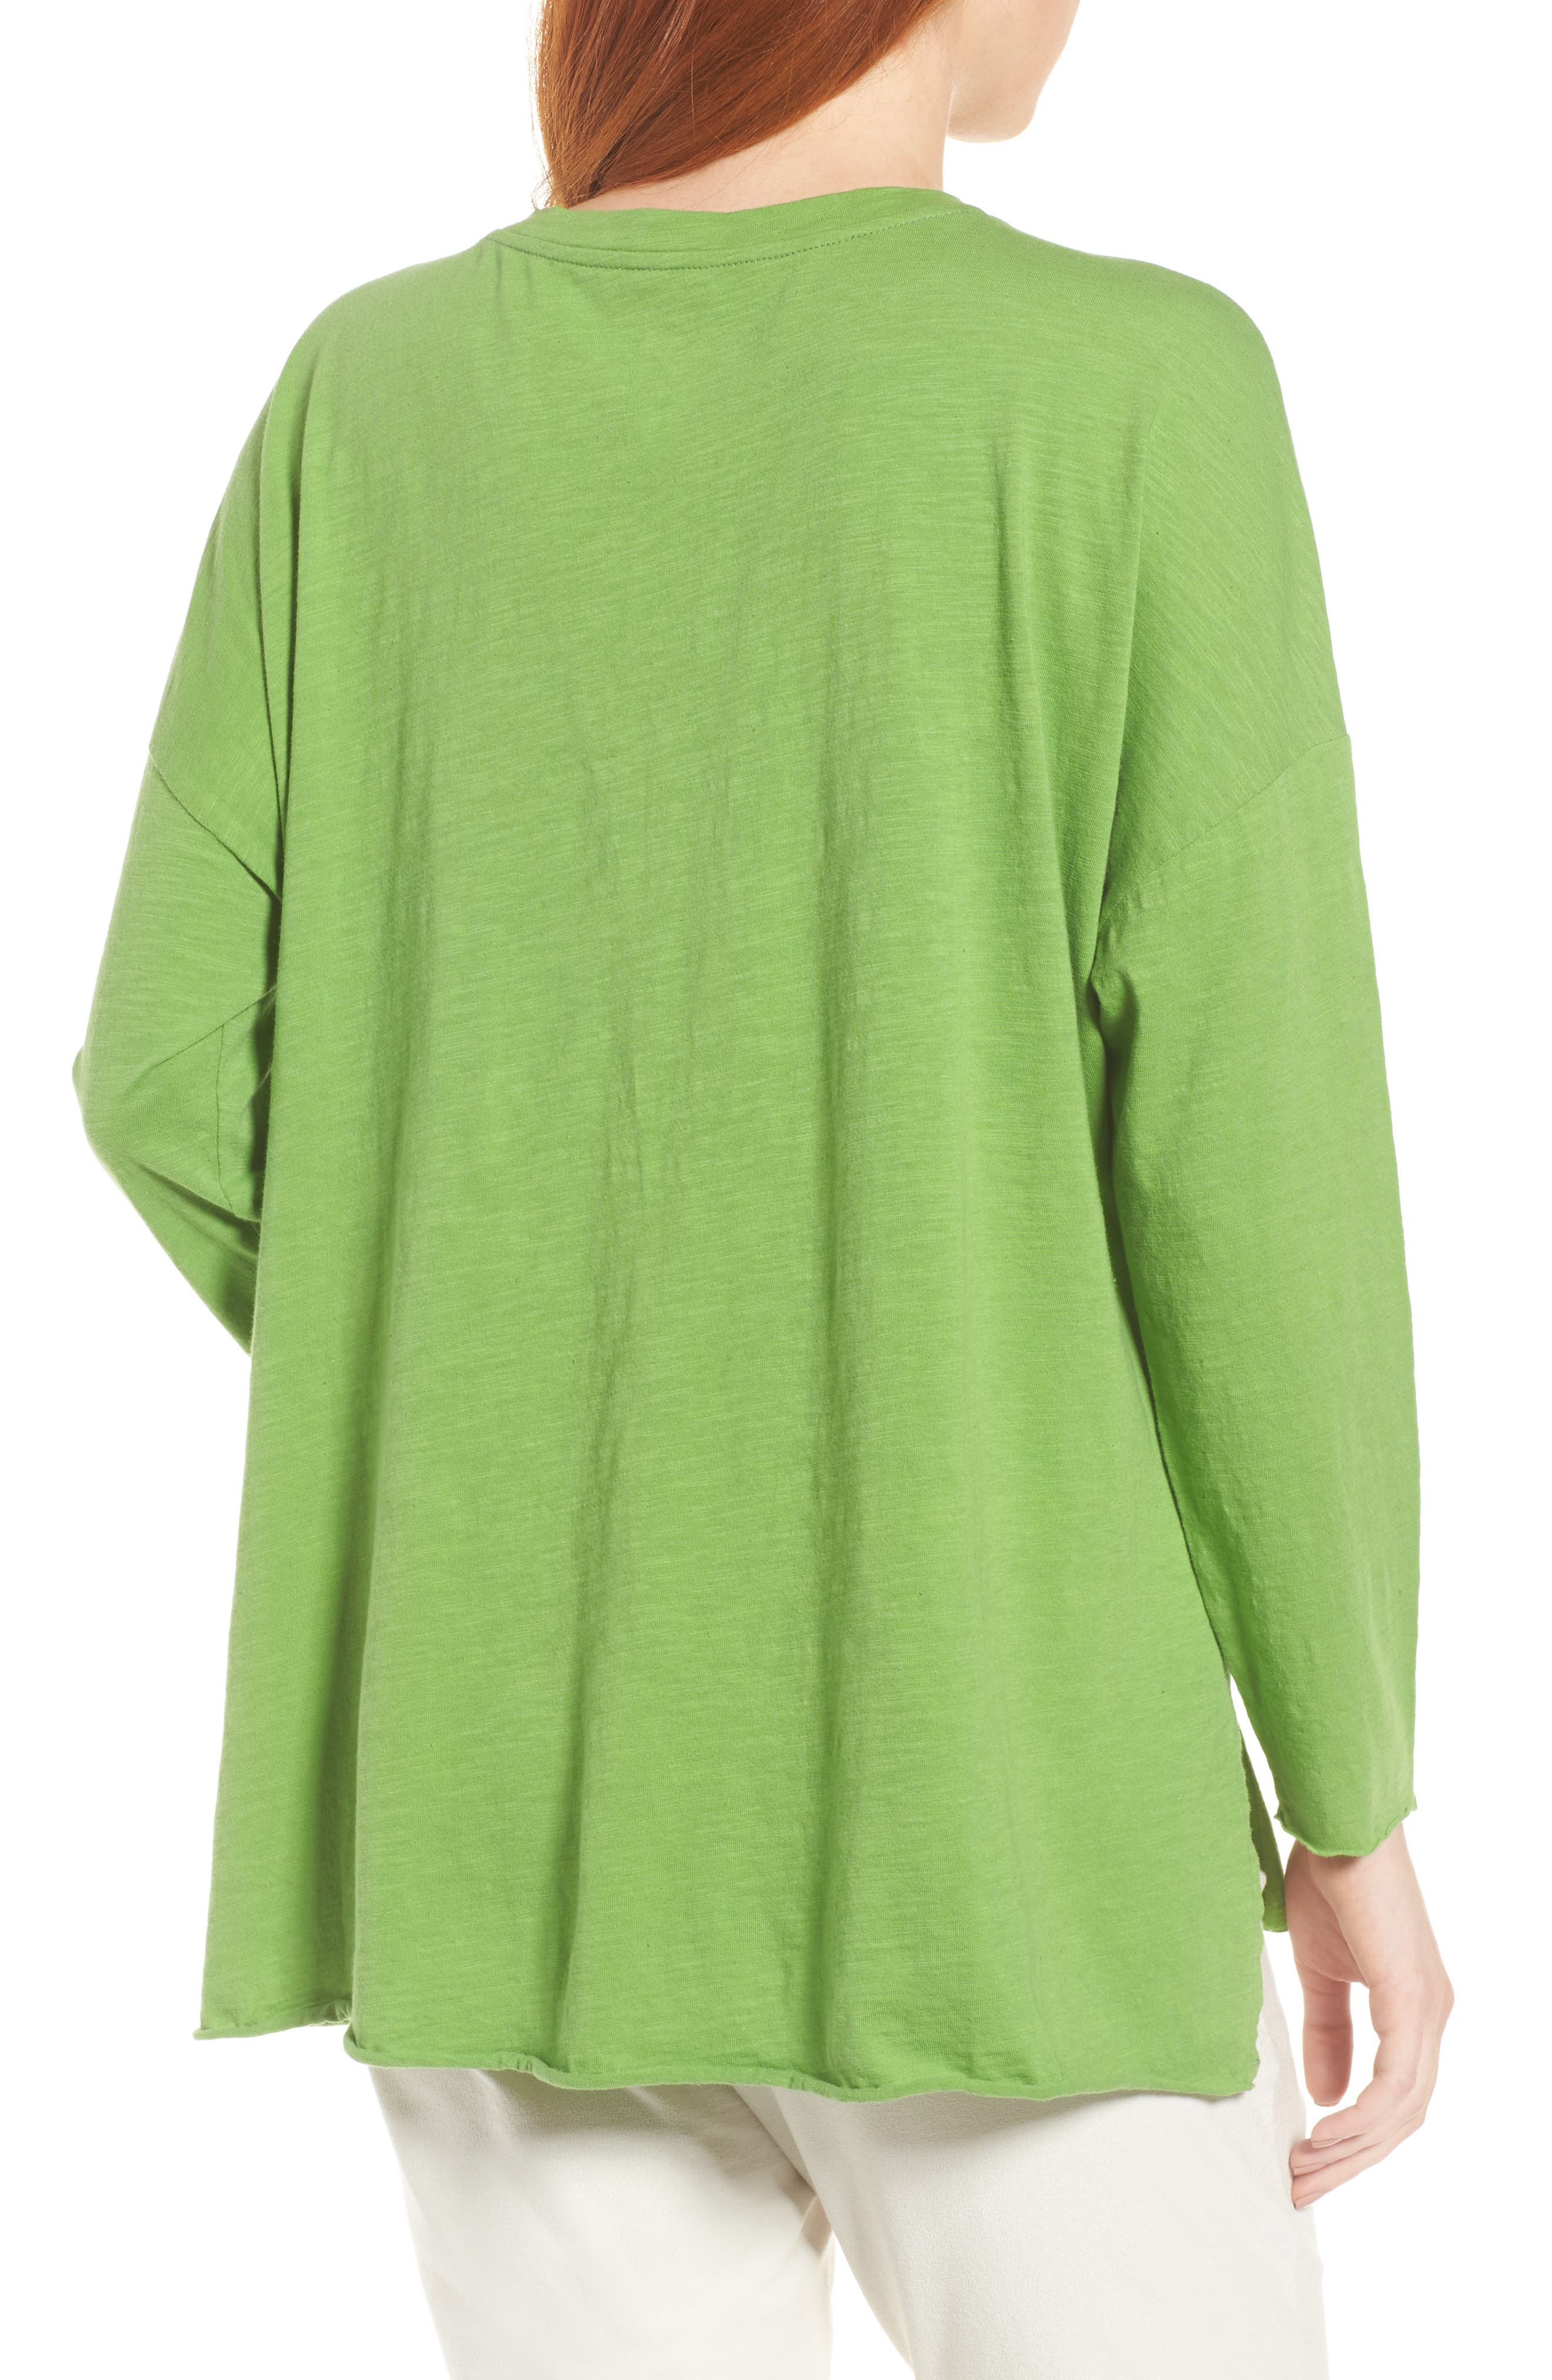 Organic Cotton Knit Top,                             Alternate thumbnail 2, color,                             Apple